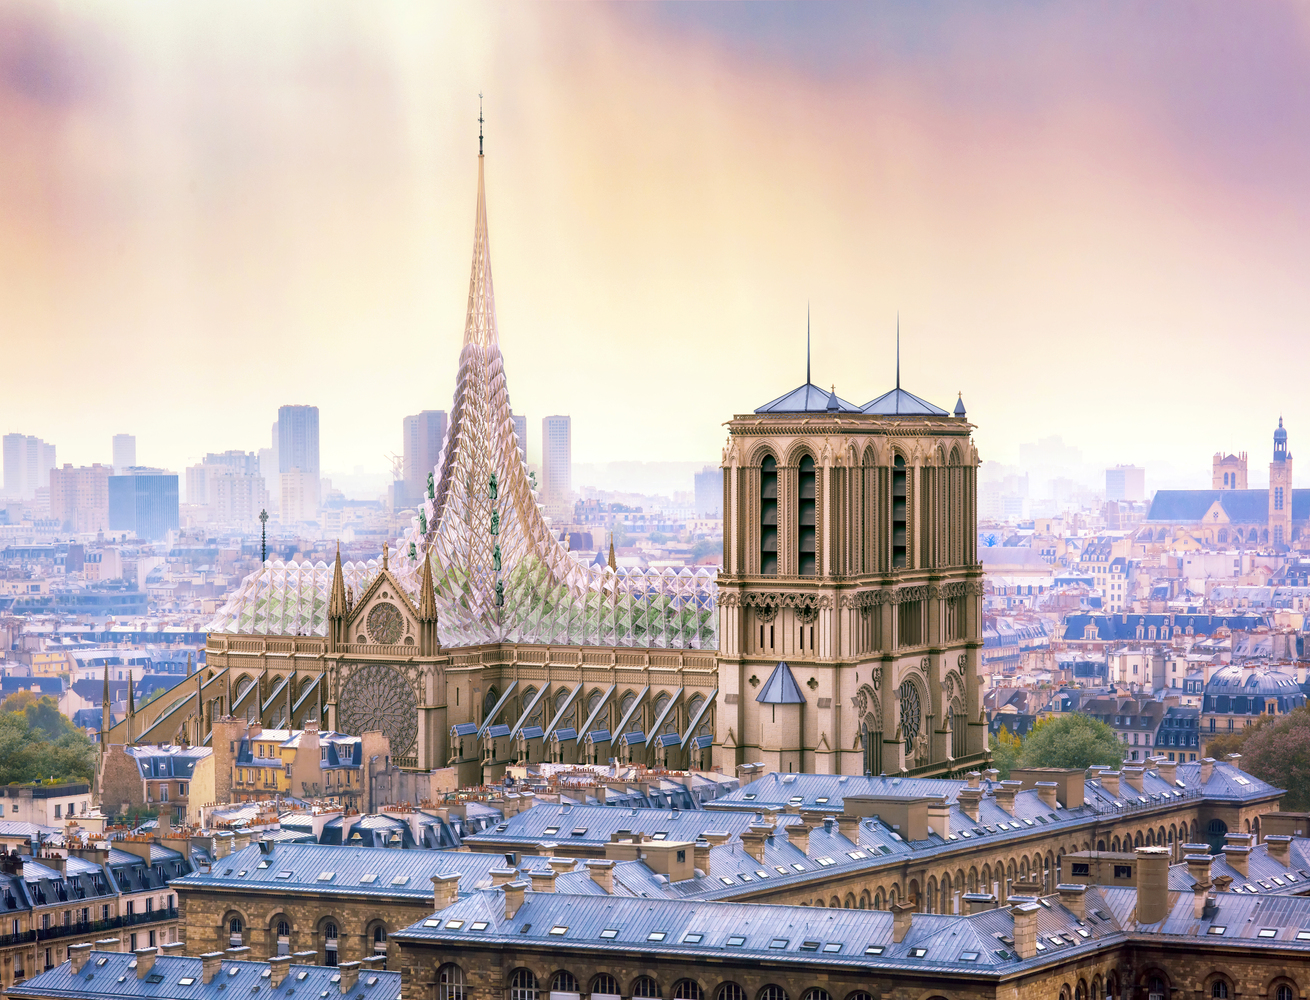 Notre Dame envisioned as net-zero building with greenhouse